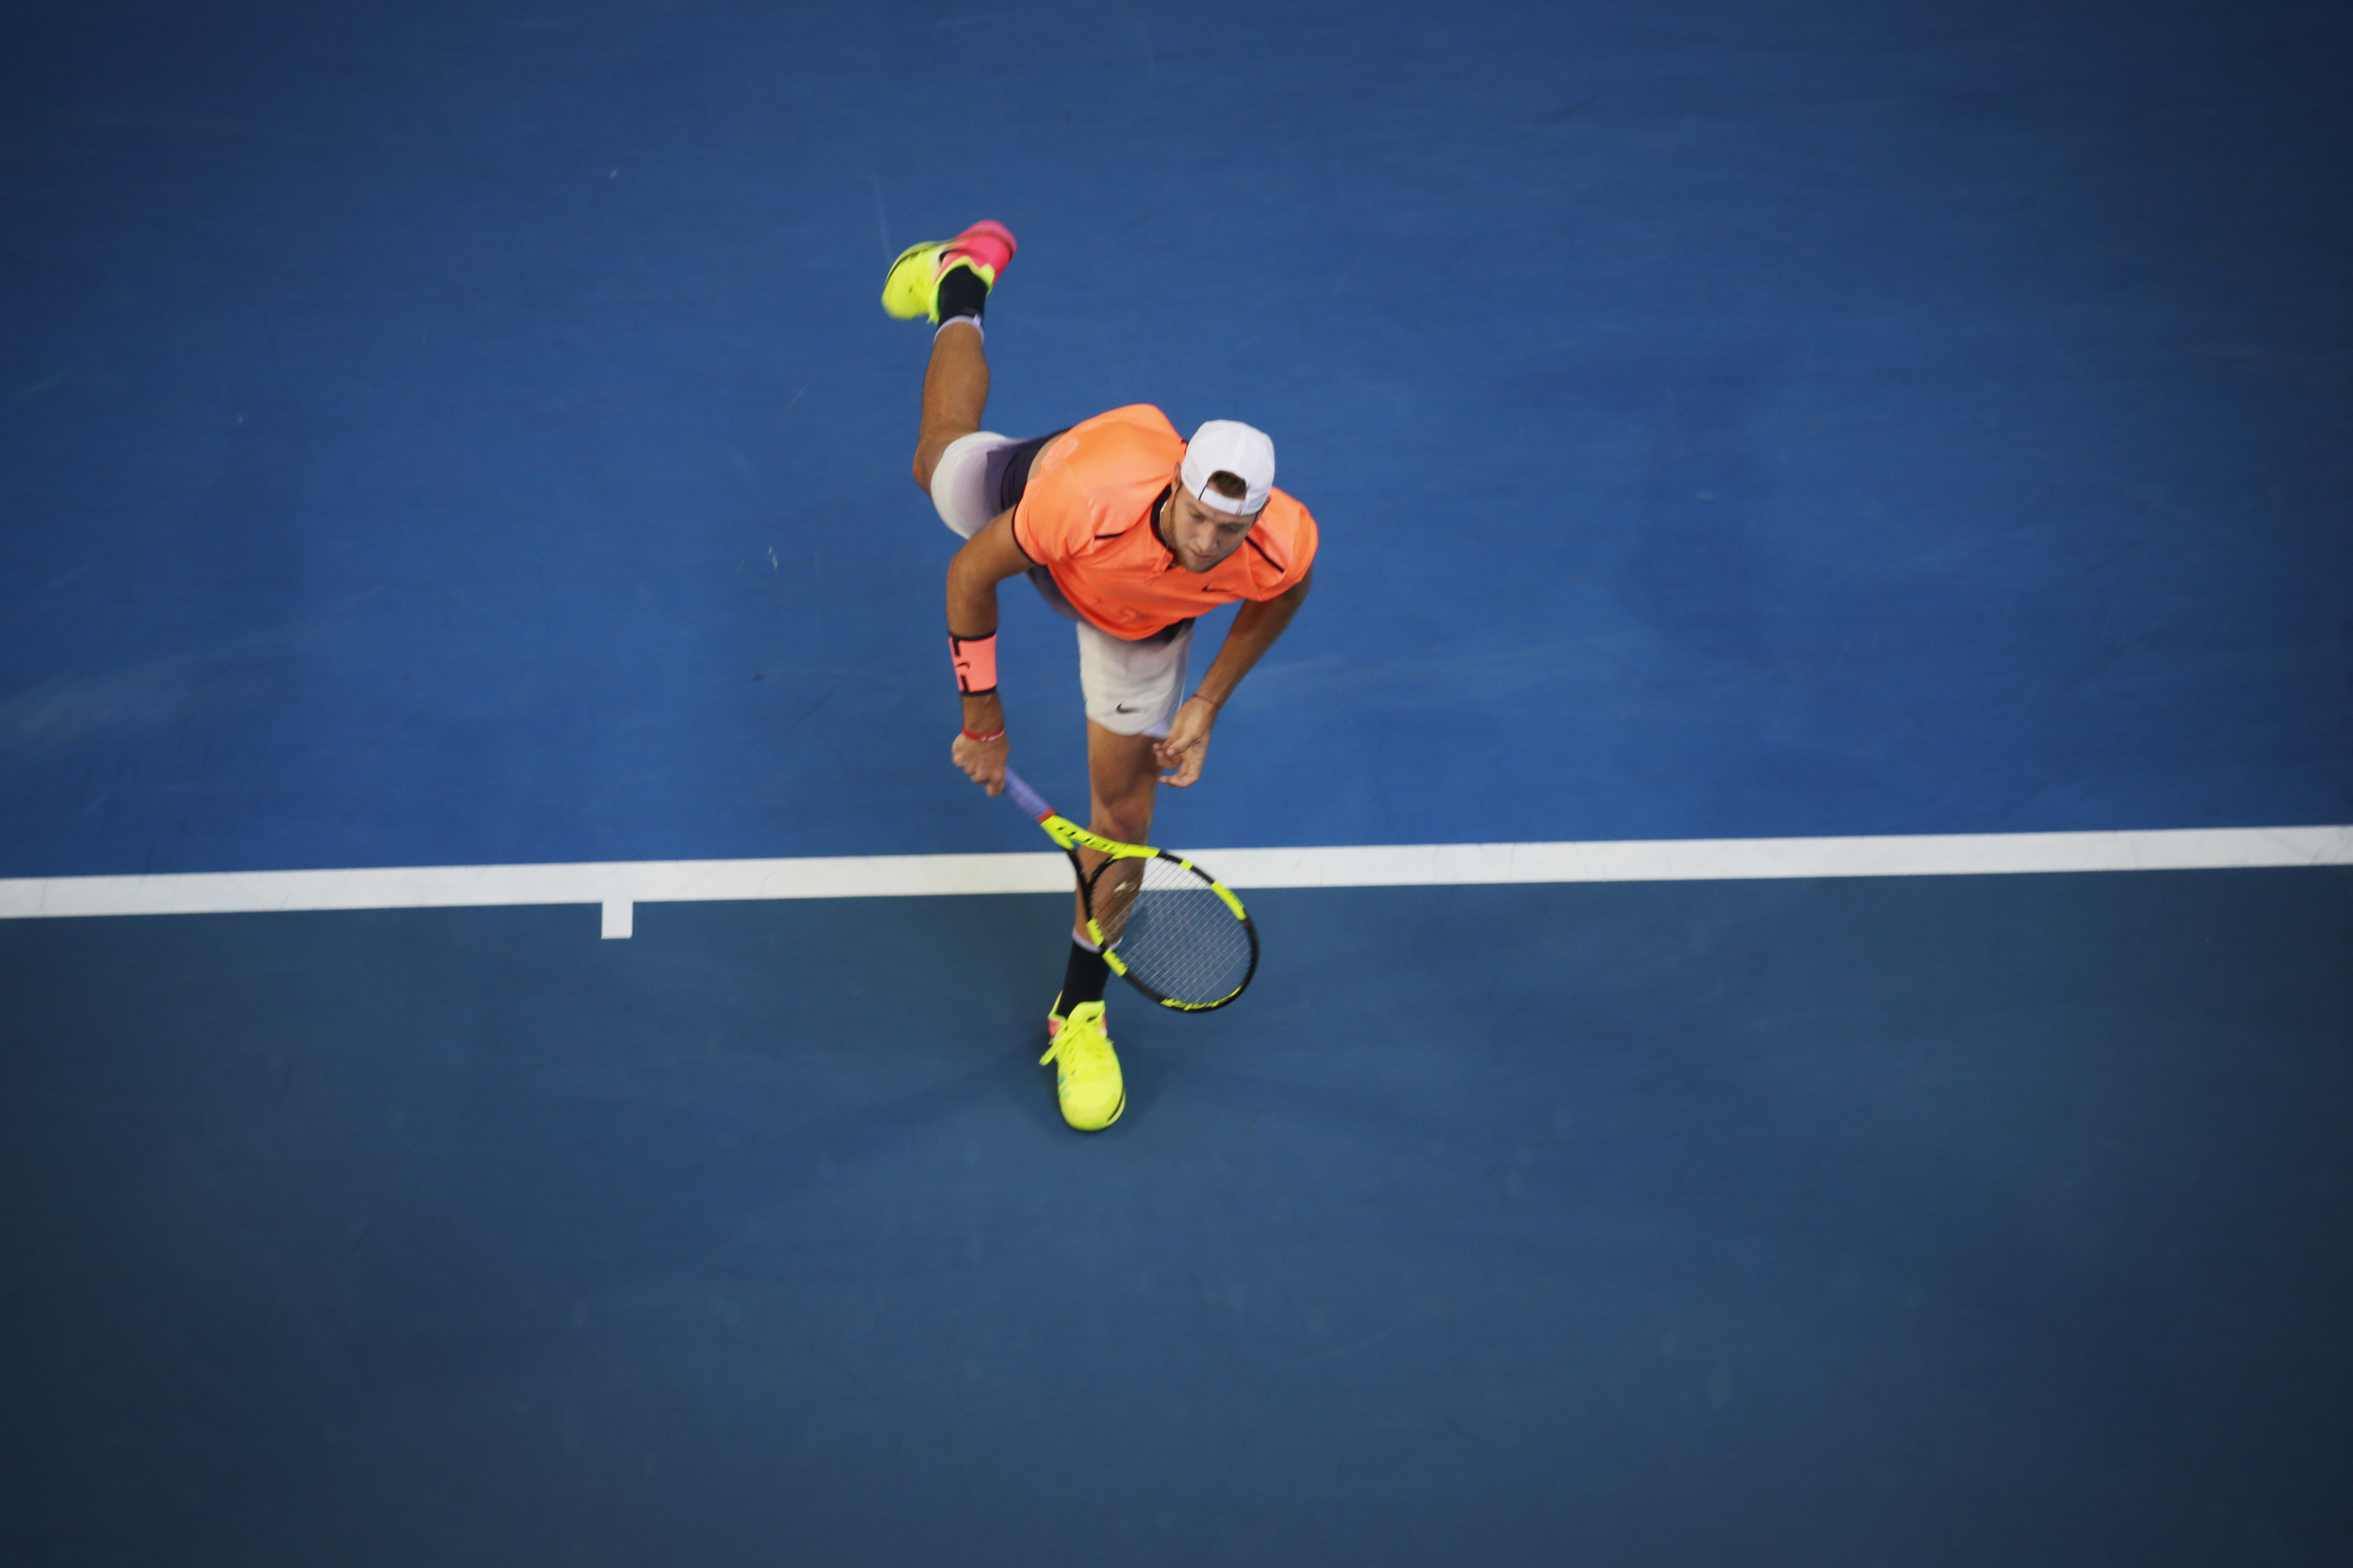 Pictured  Jack Sock (USA)  in the Hopman Cup final against Richard Gasquet (France)